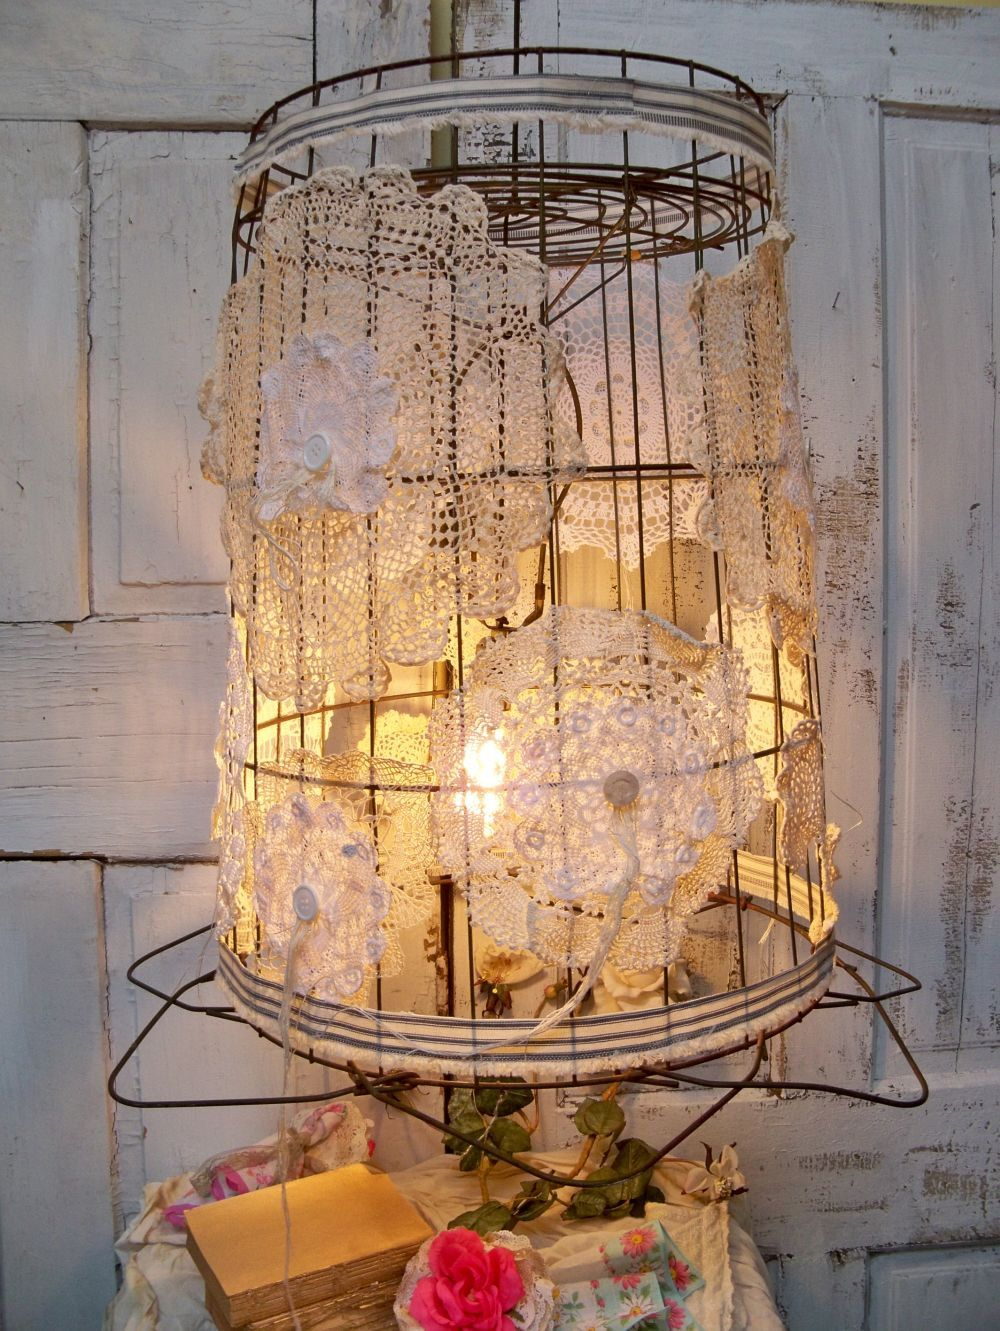 shabby chic lighting. Recycled Hanging Lamp Large Re-purposed Wire Basket Light Fixture Shabby Chic Lighting OOAK Anita Spero $175 A